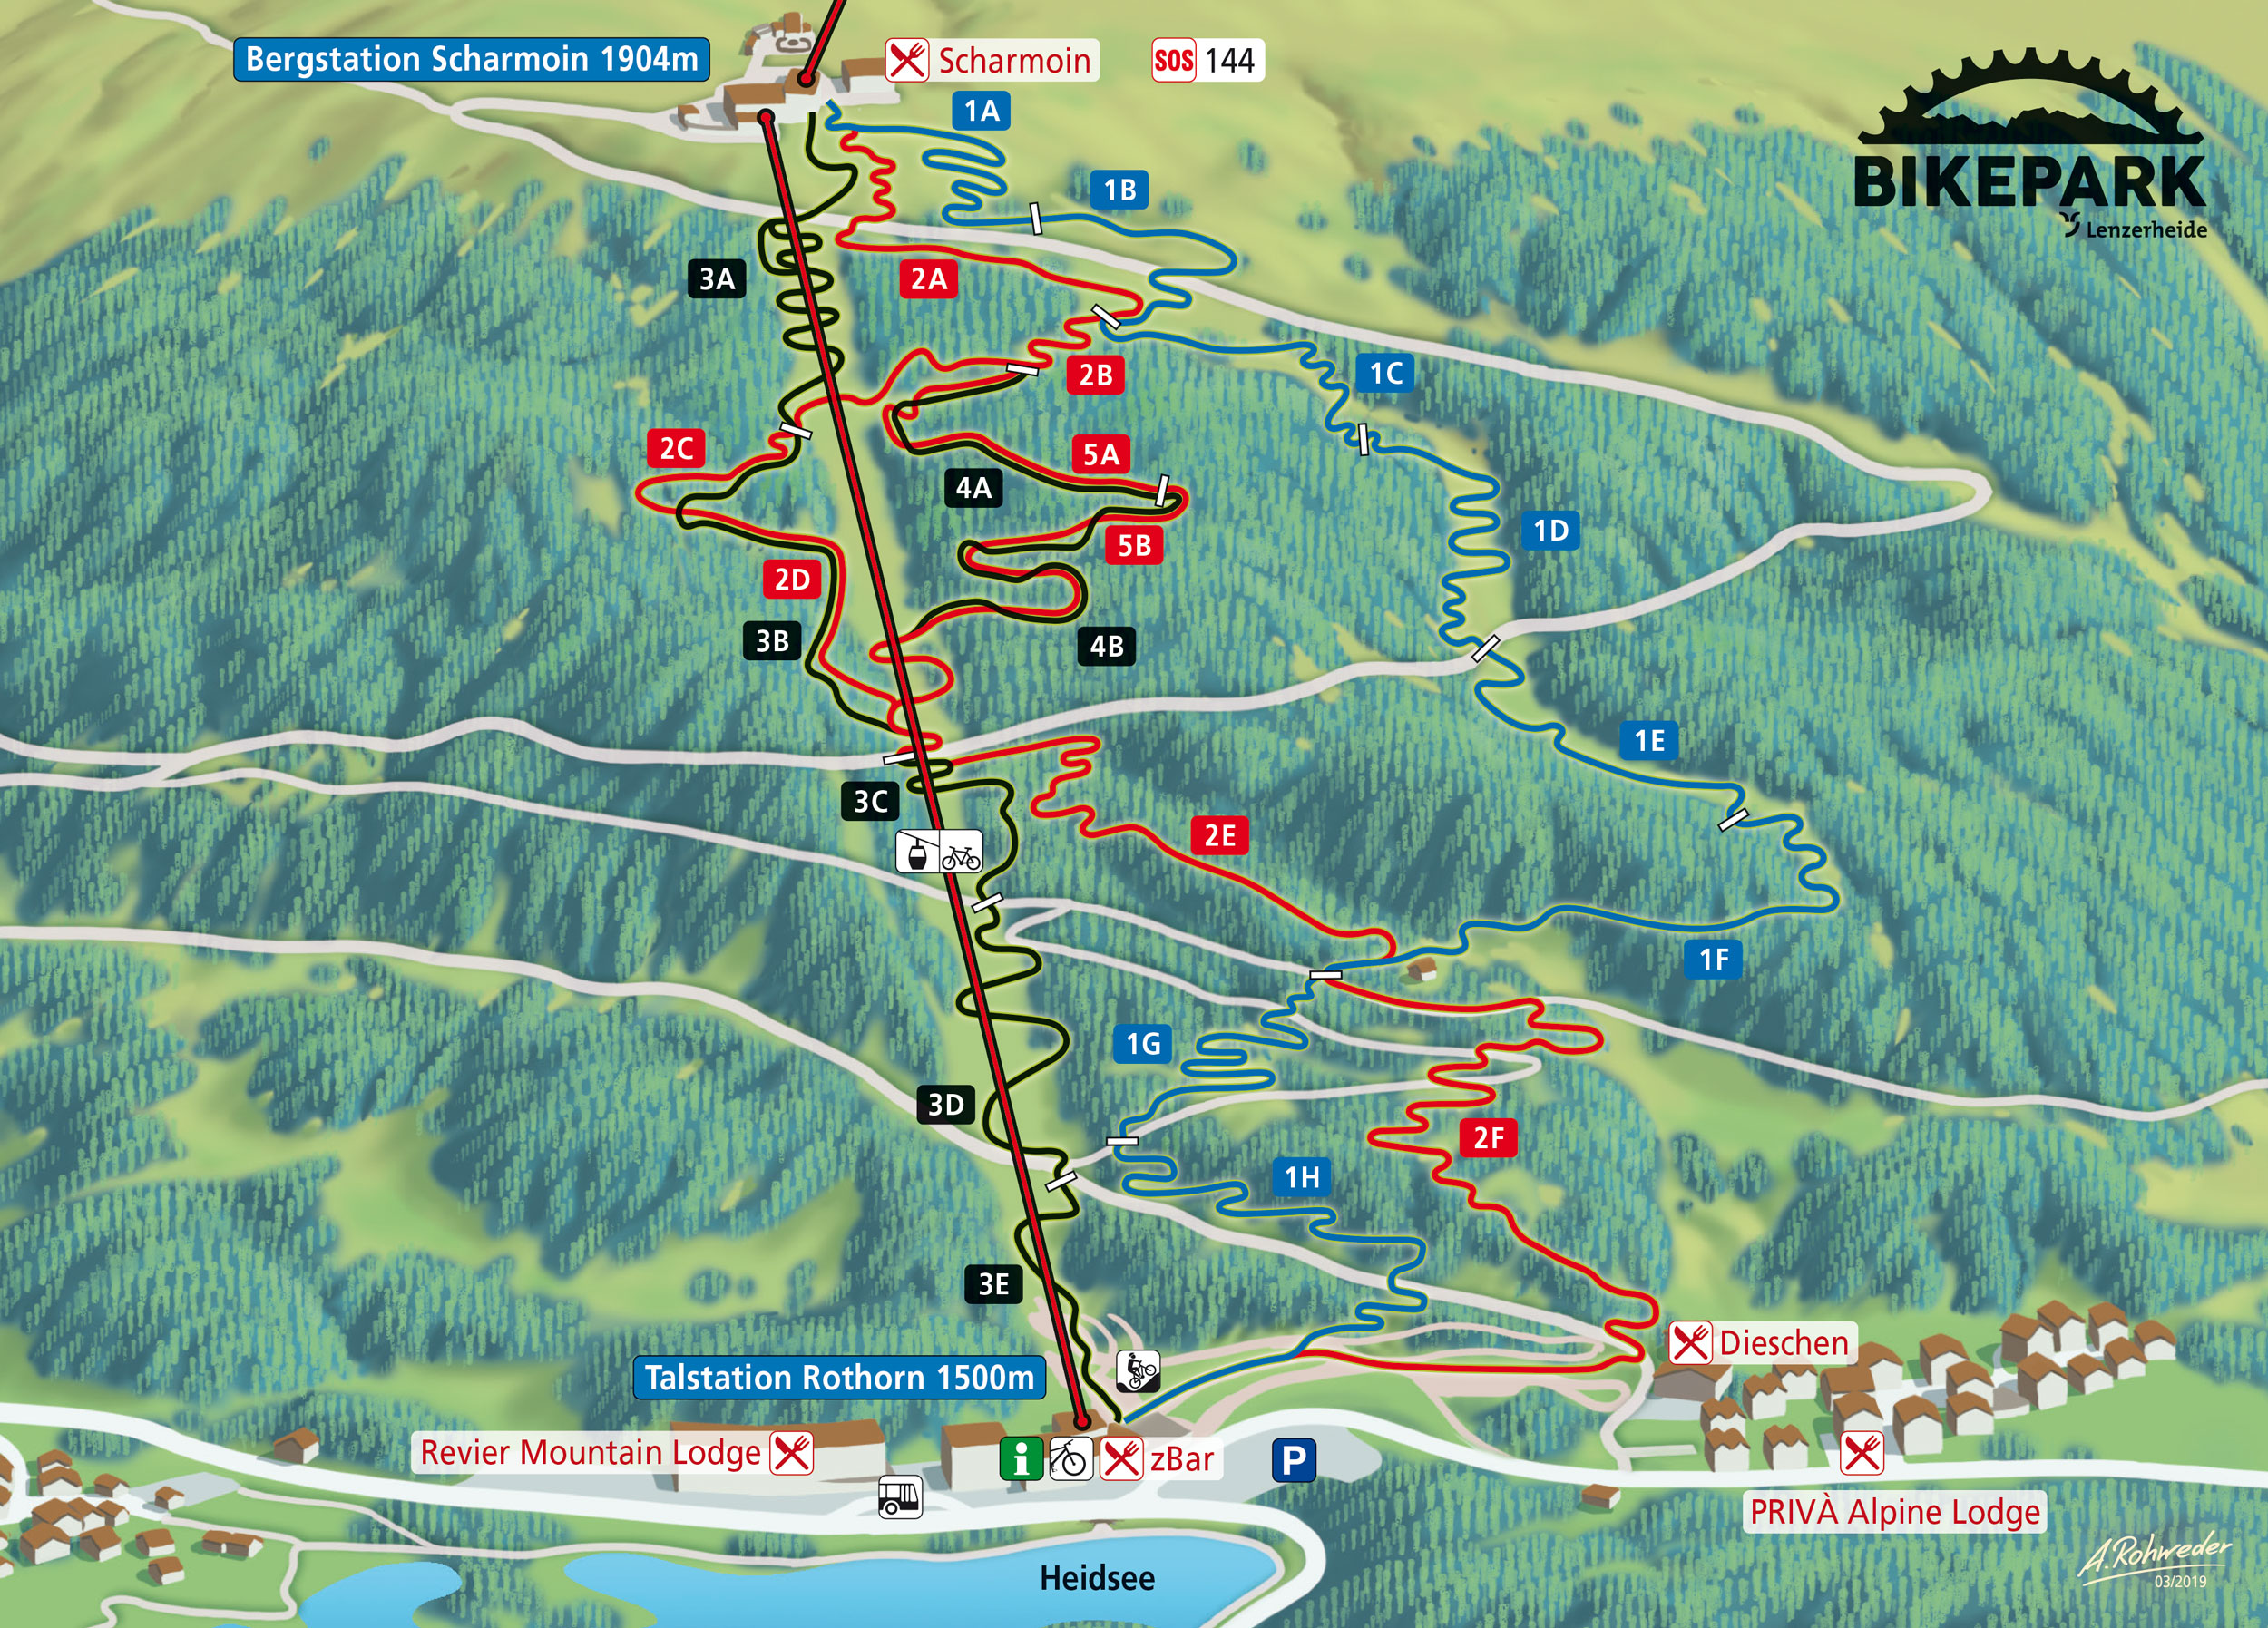 Lenzerheide Bike Park Karte Map